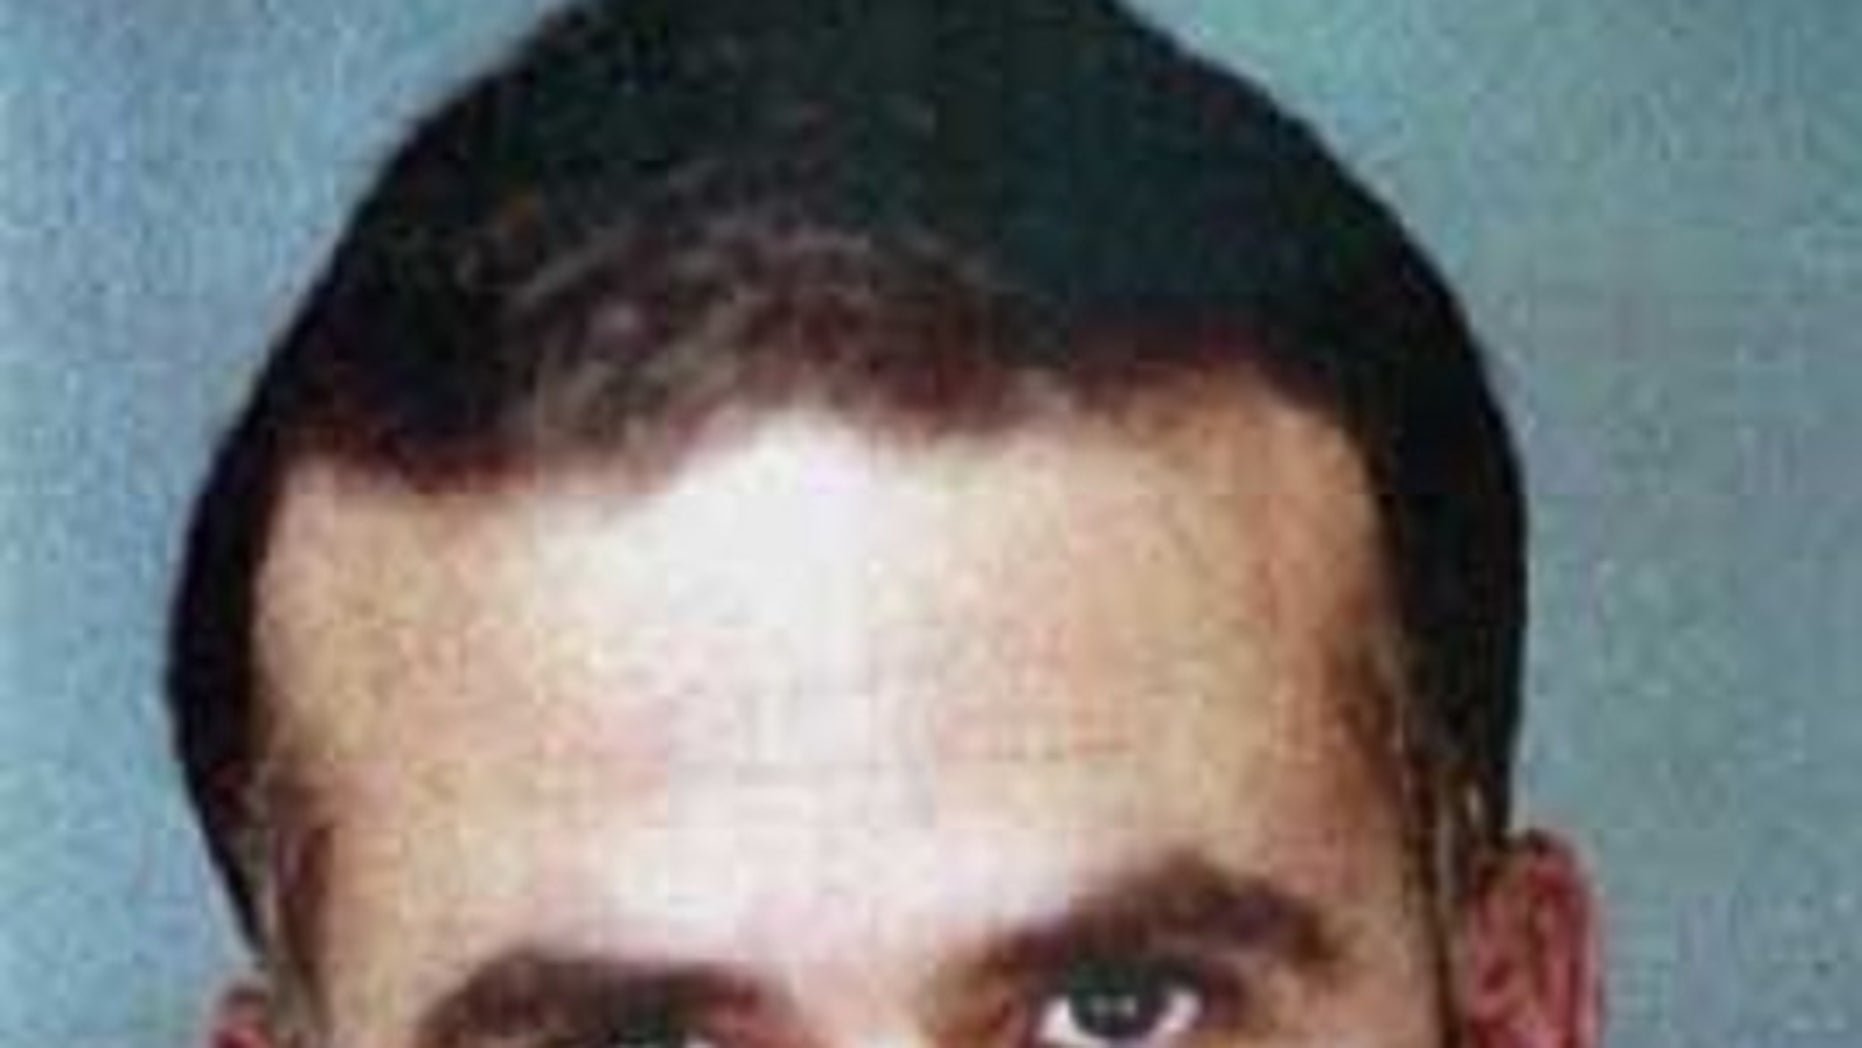 Motel handyman Cary Stayner is shown in a July 29, 1999, mugshot, was charged Oct. 20, 1999, with capital murder in the killings of three Yosemite sightseers. He was also linked to a fourth slaying.